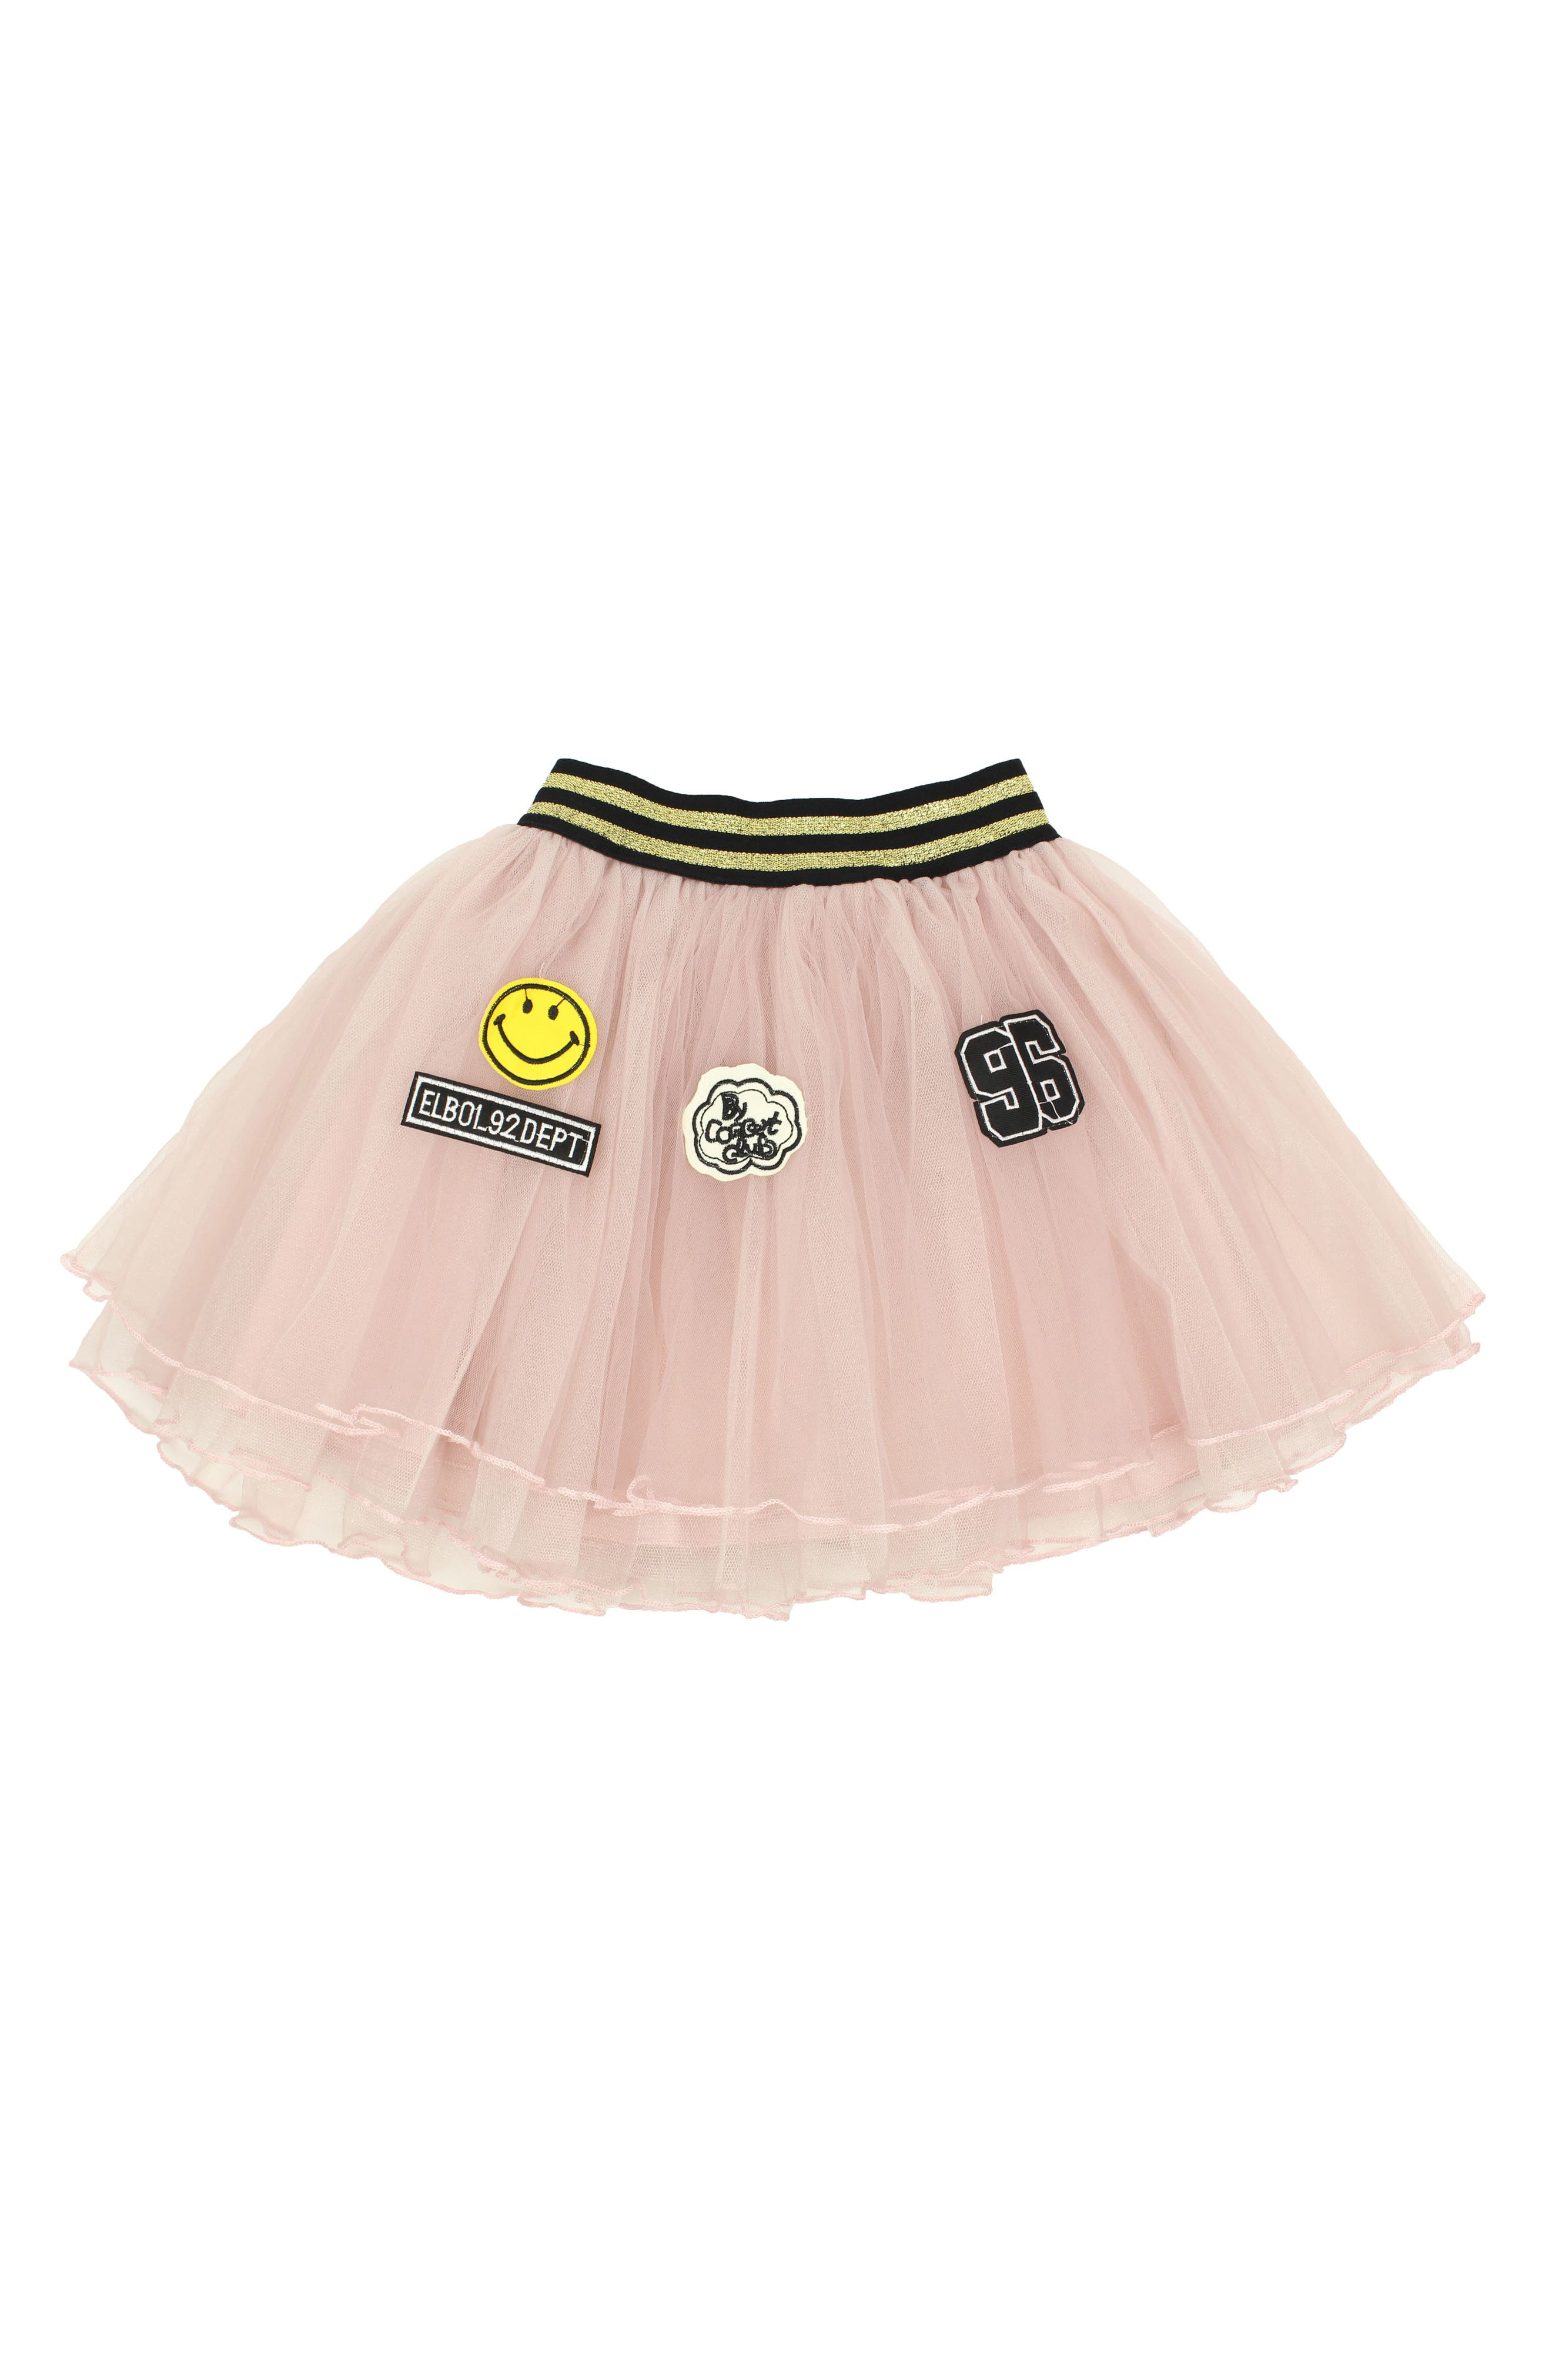 Toddler Girls Popatu Varsity Patches Tulle Skirt Size S (34T)  Pink